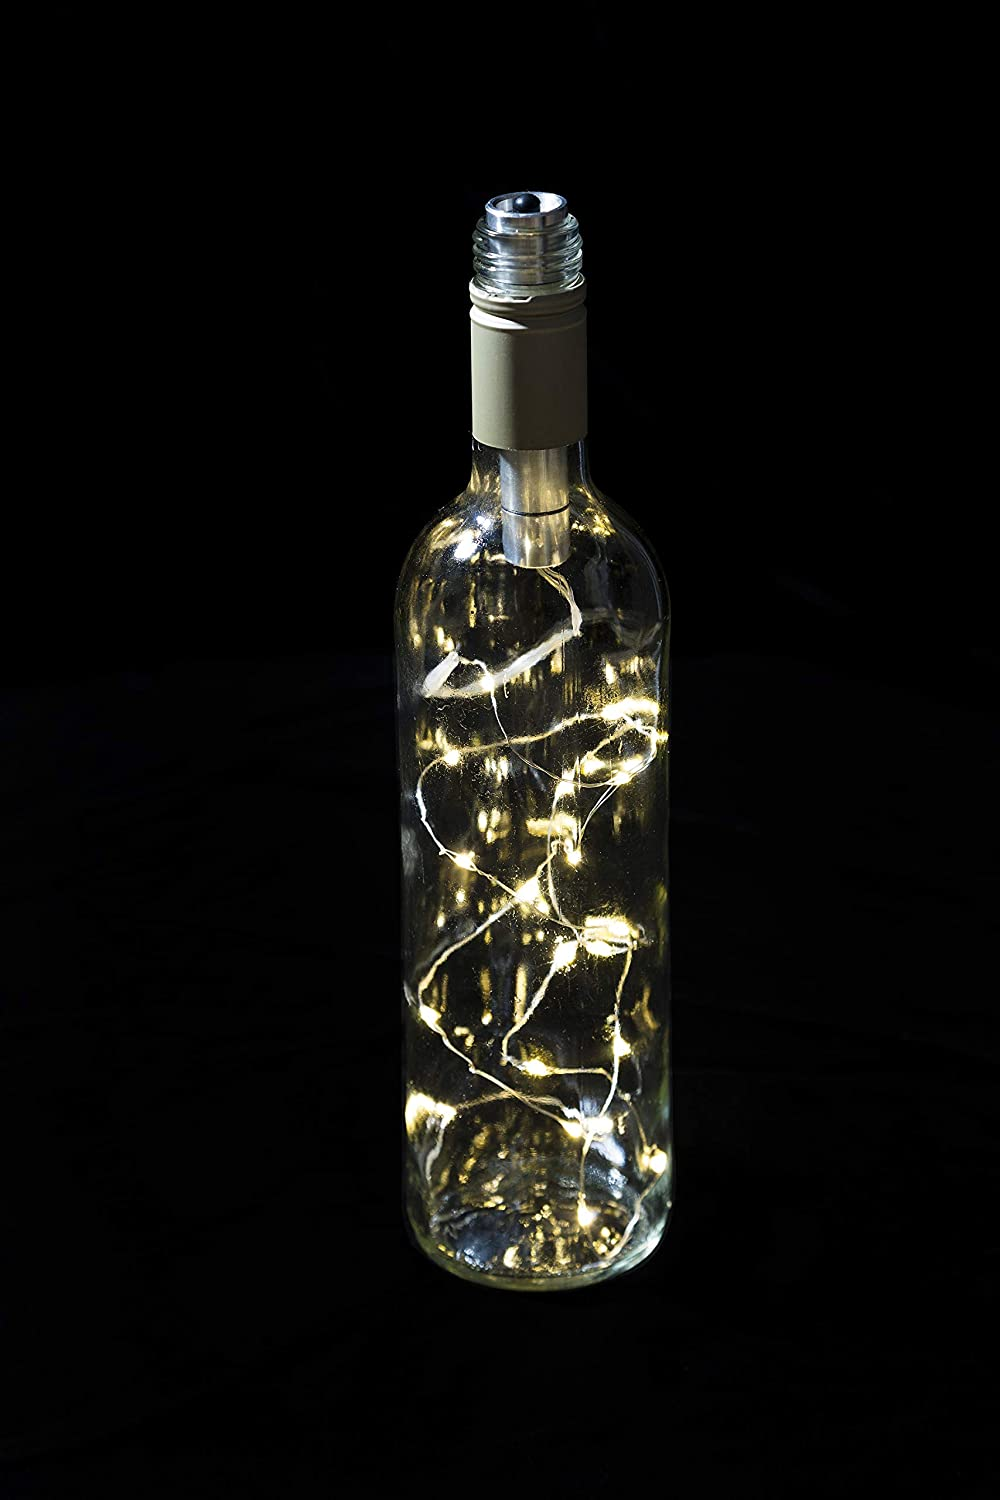 Bottle Fairly Lights